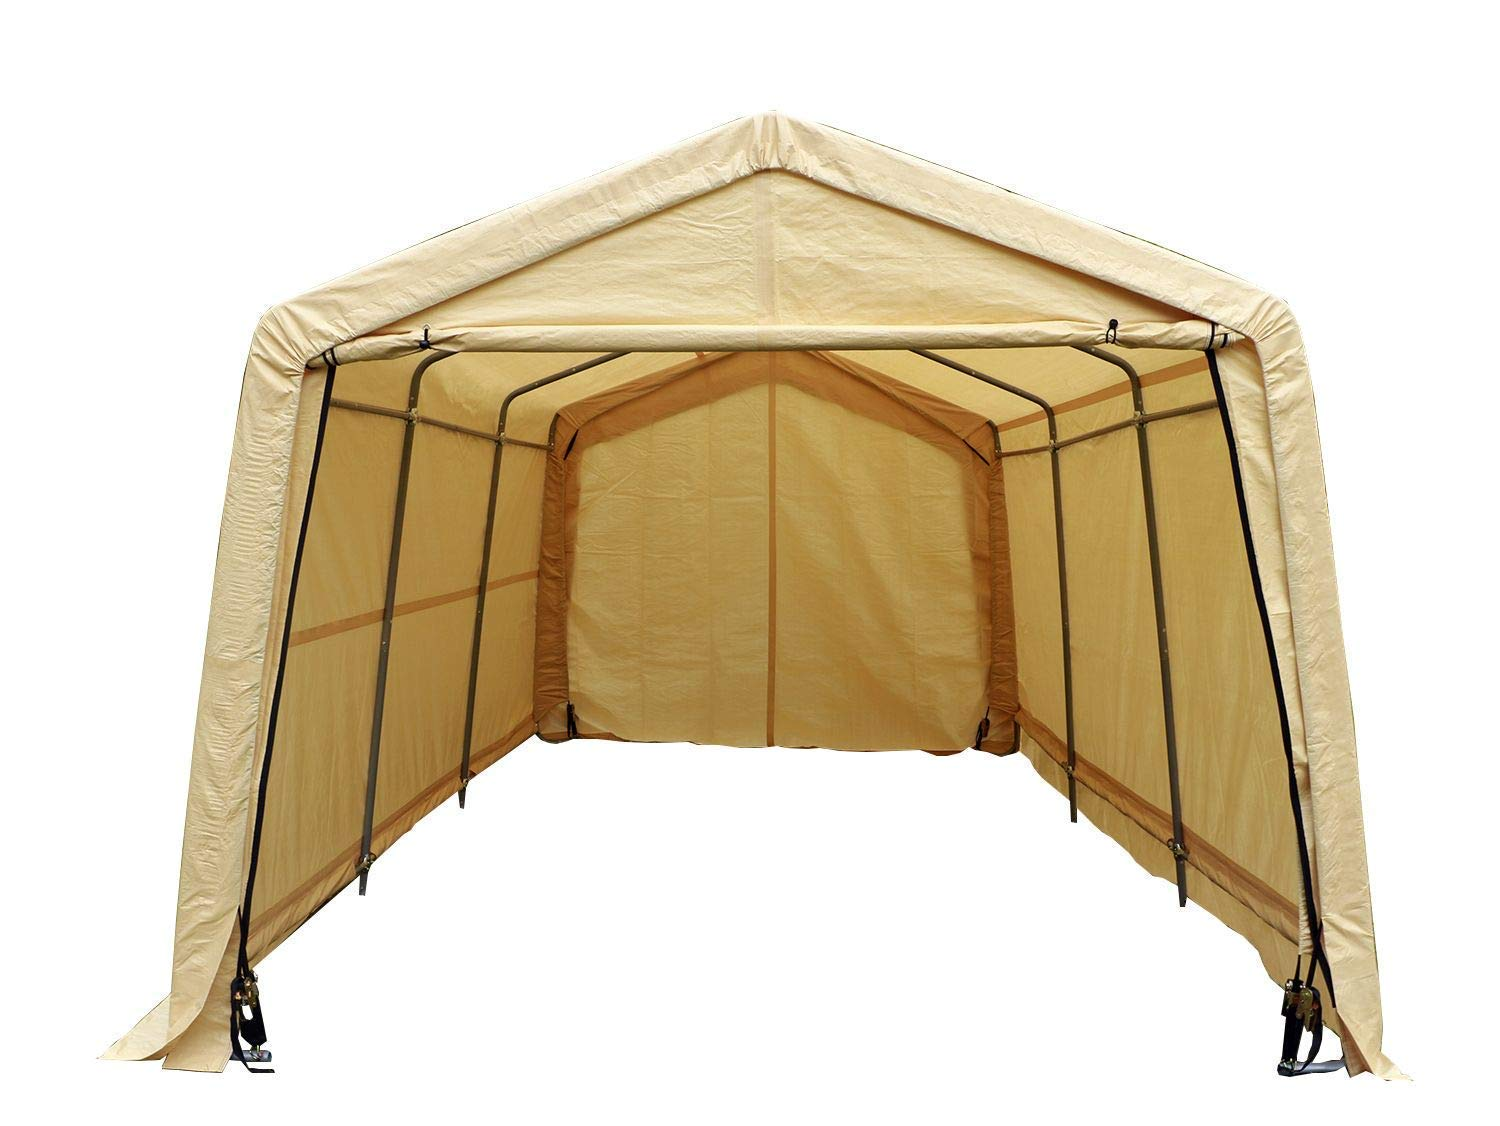 UHOM Auto Shelter 10x10x8 Portable Outdoor Garage Storage Shed Canopy Carport Beige